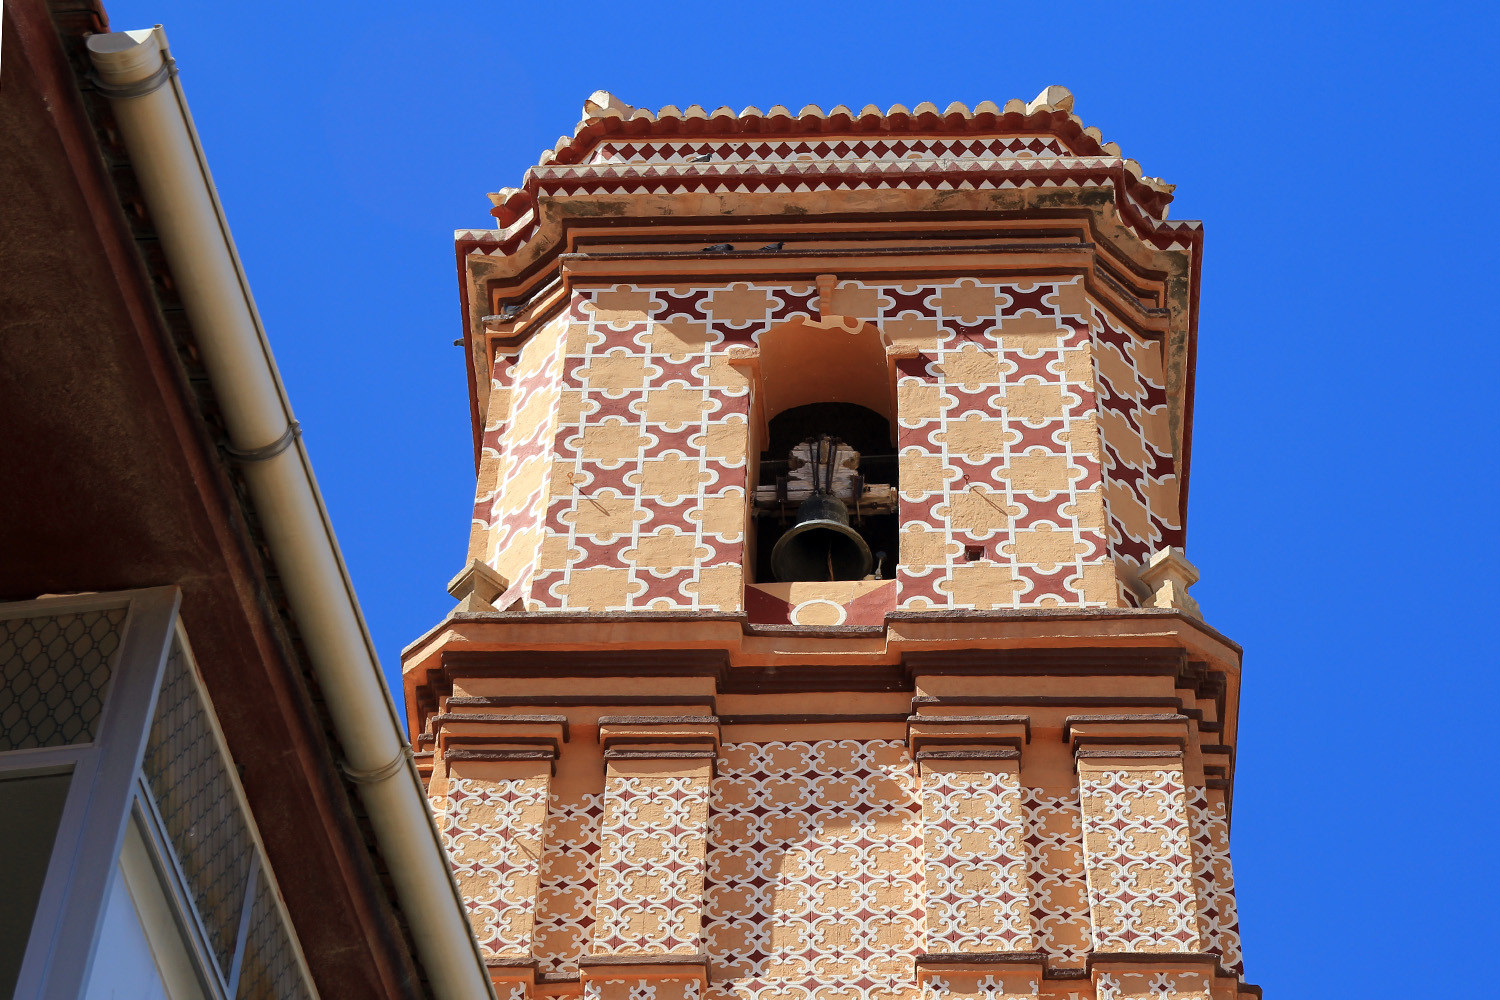 The Church Tower of Dólar